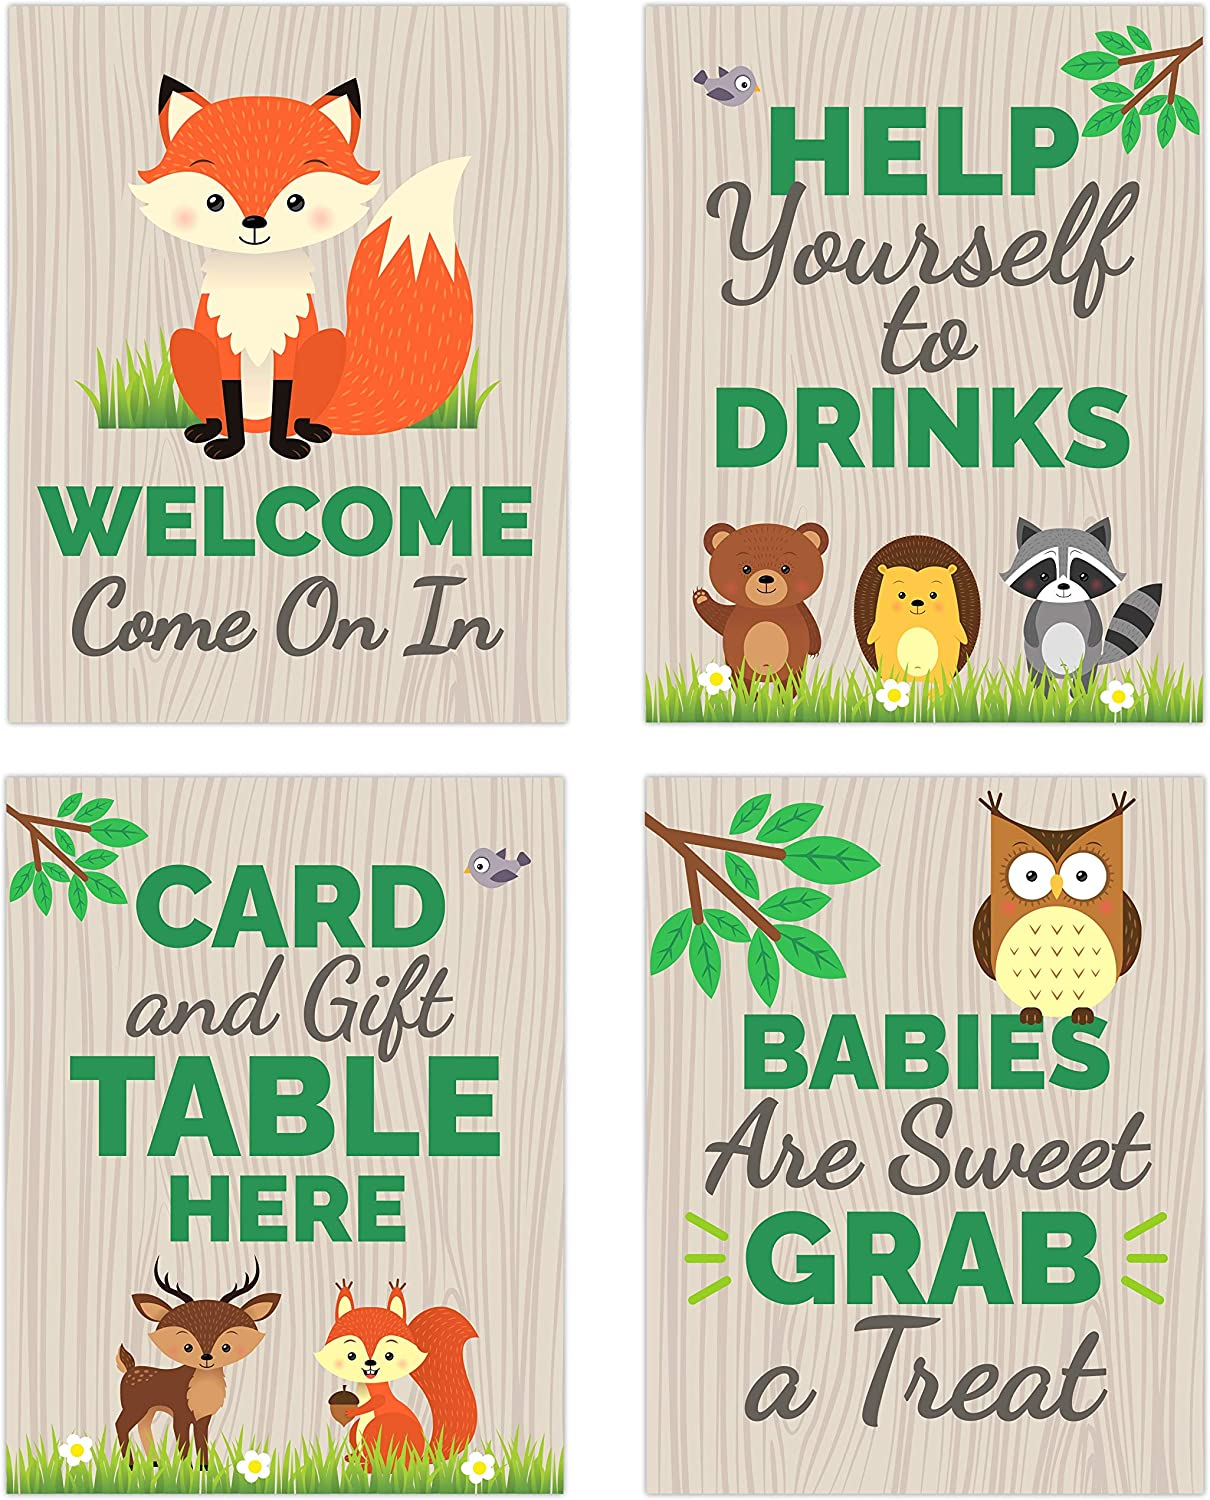 Woodland Baby Shower Table Decorations Signs - Centerpiece Decor Supplies